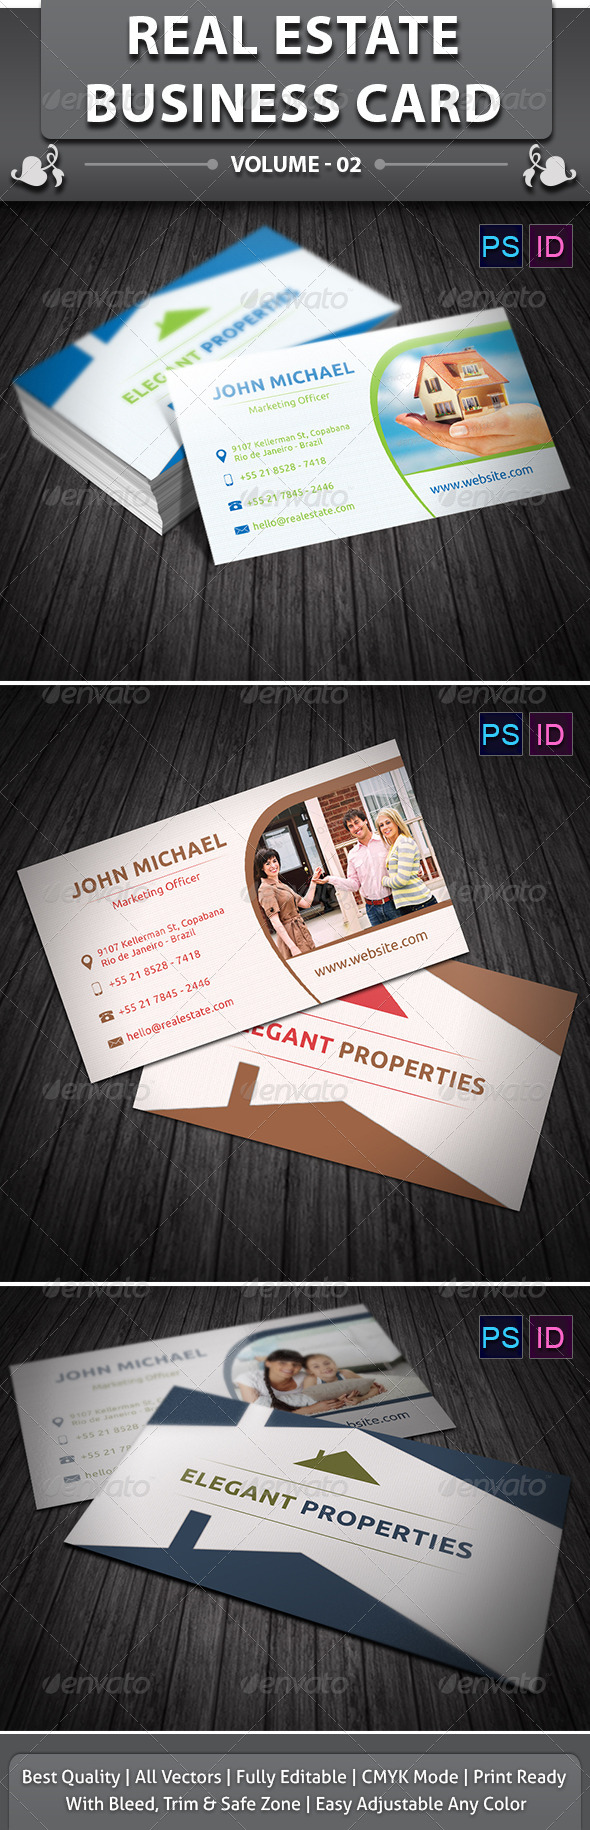 Real Estate Business Card v2